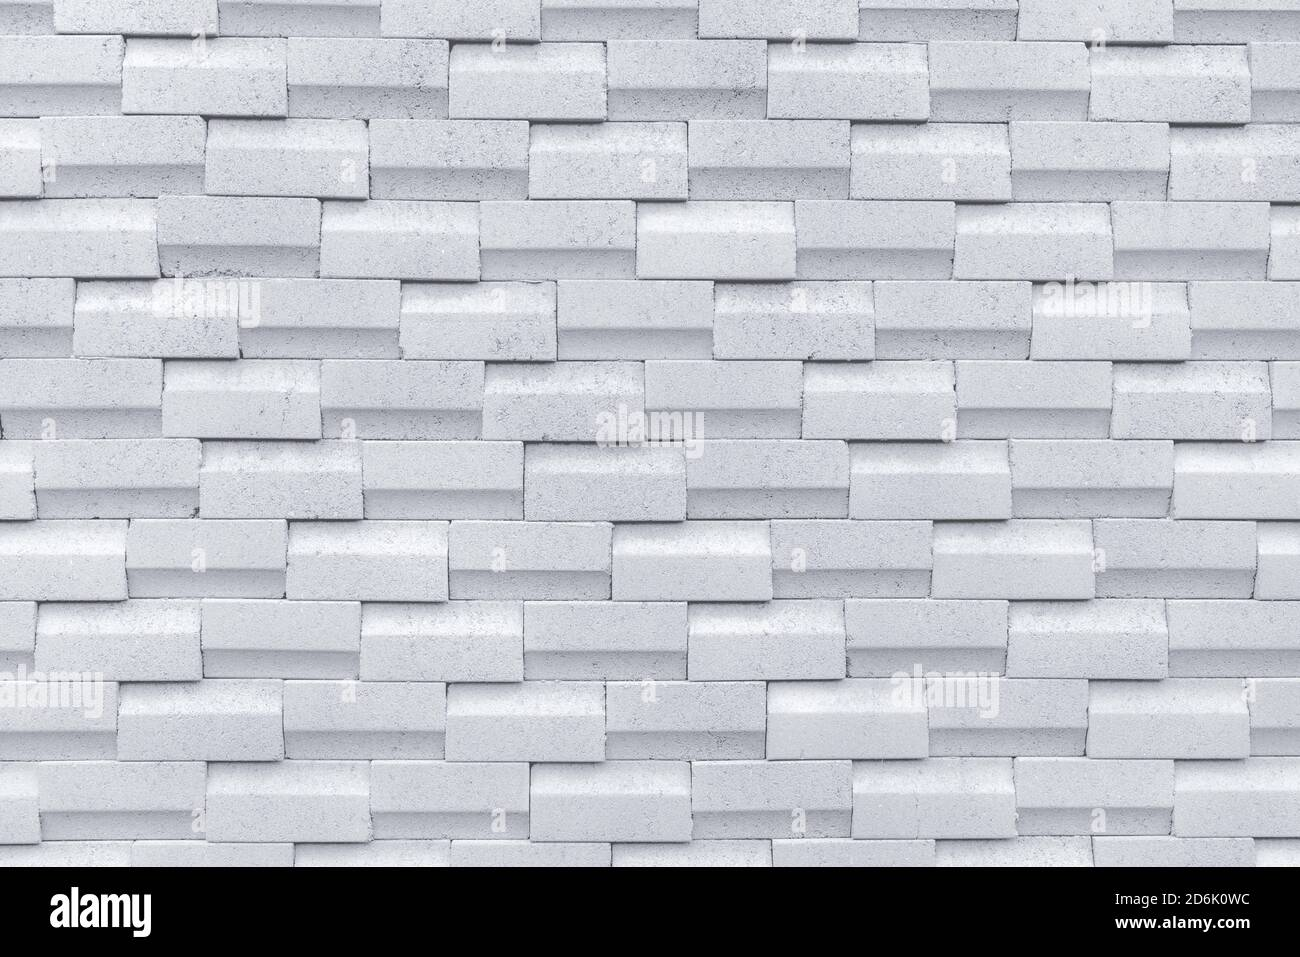 White Brick Wall With Simple Pattern White Wall Texture Abstract Background Modern Design Of Brick Wall Background Simple Abstract Wallpaper Stock Photo Alamy